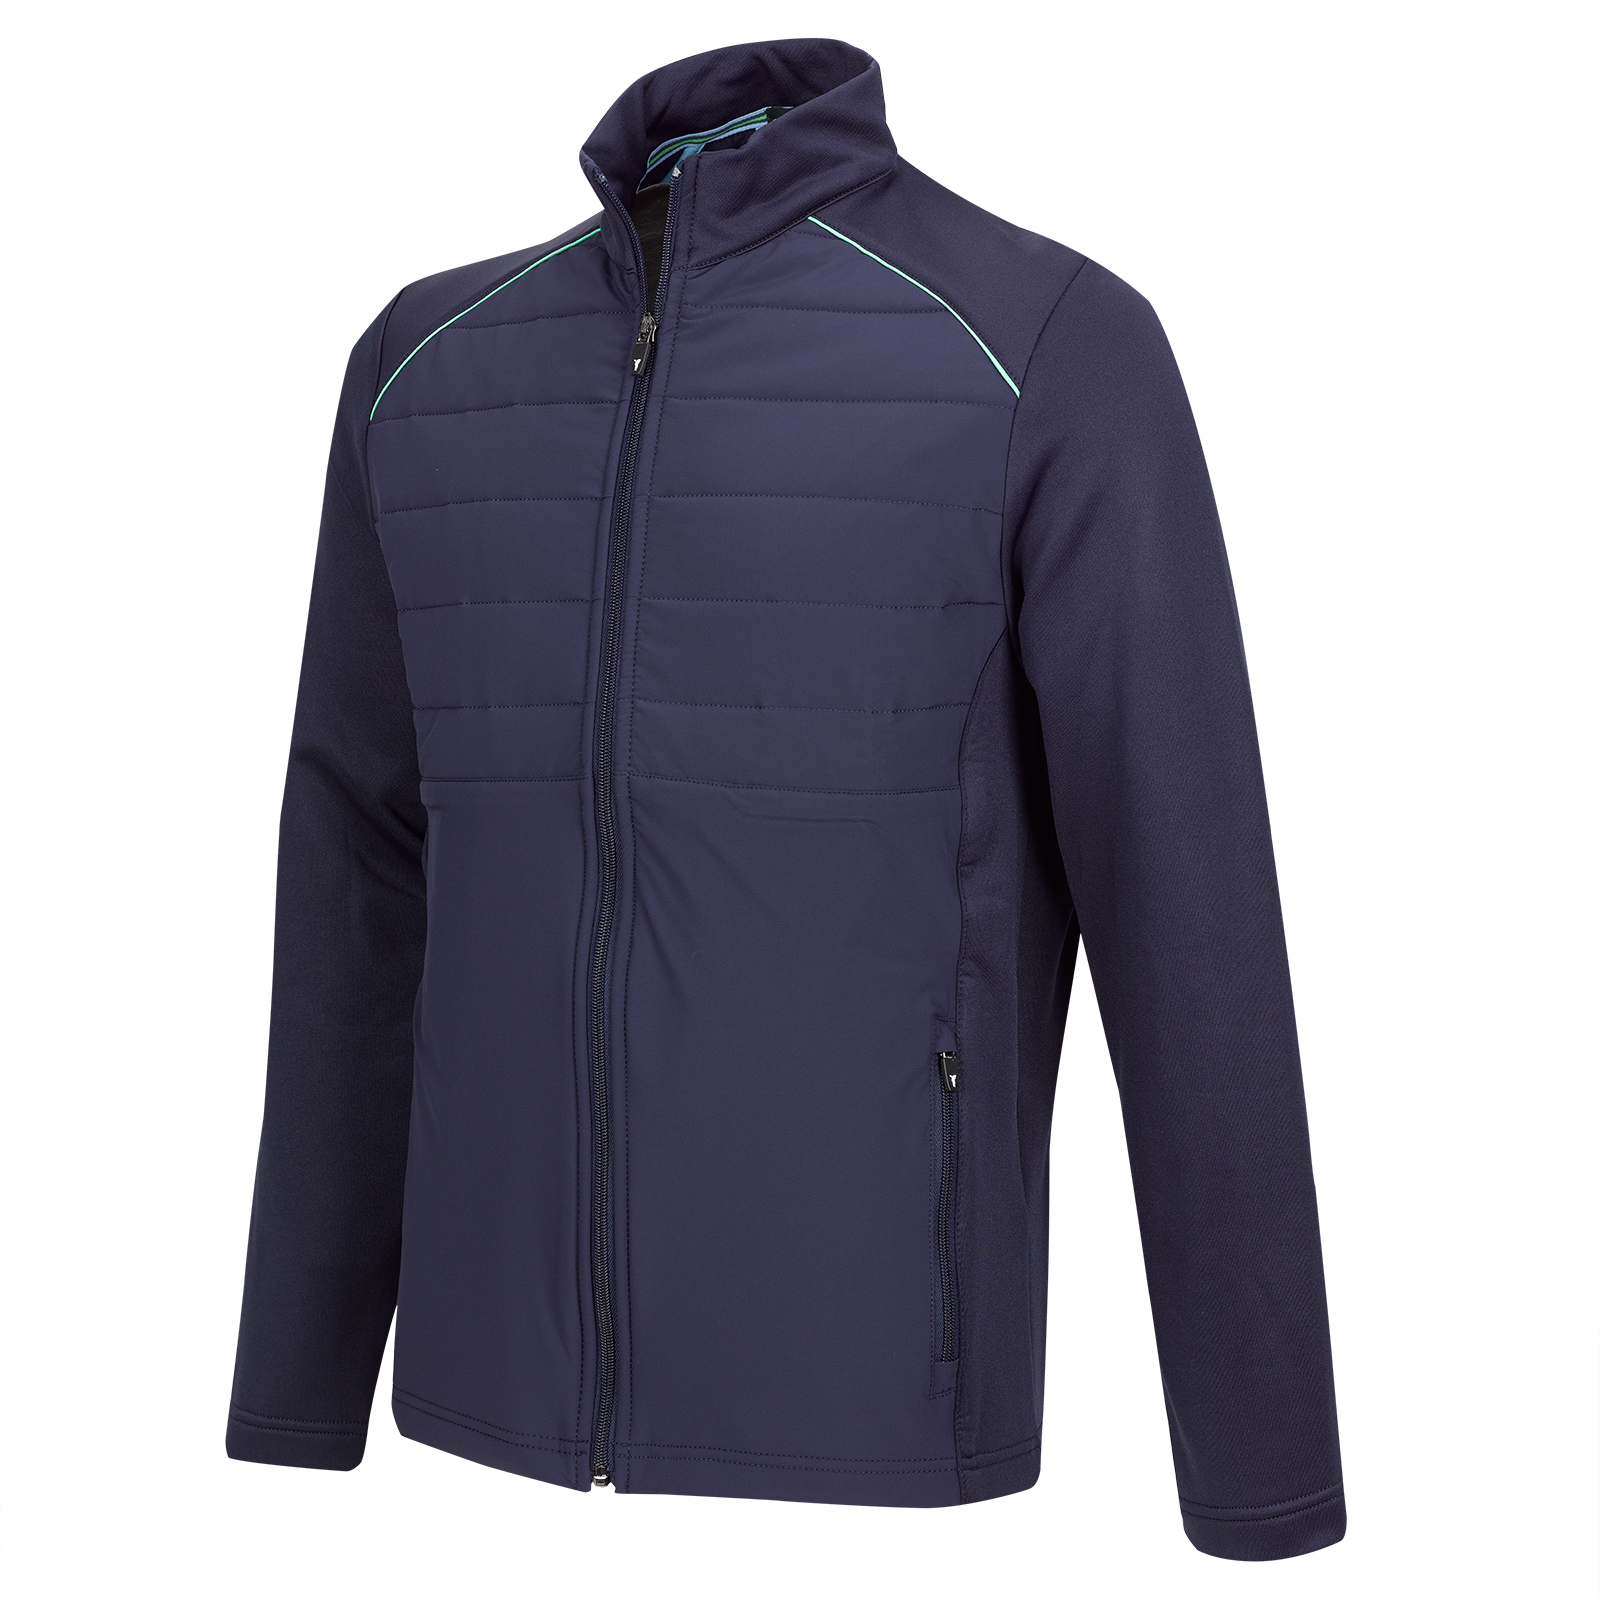 Gesteppte Performance Herren Stretch-Golfjacke Cold Protection